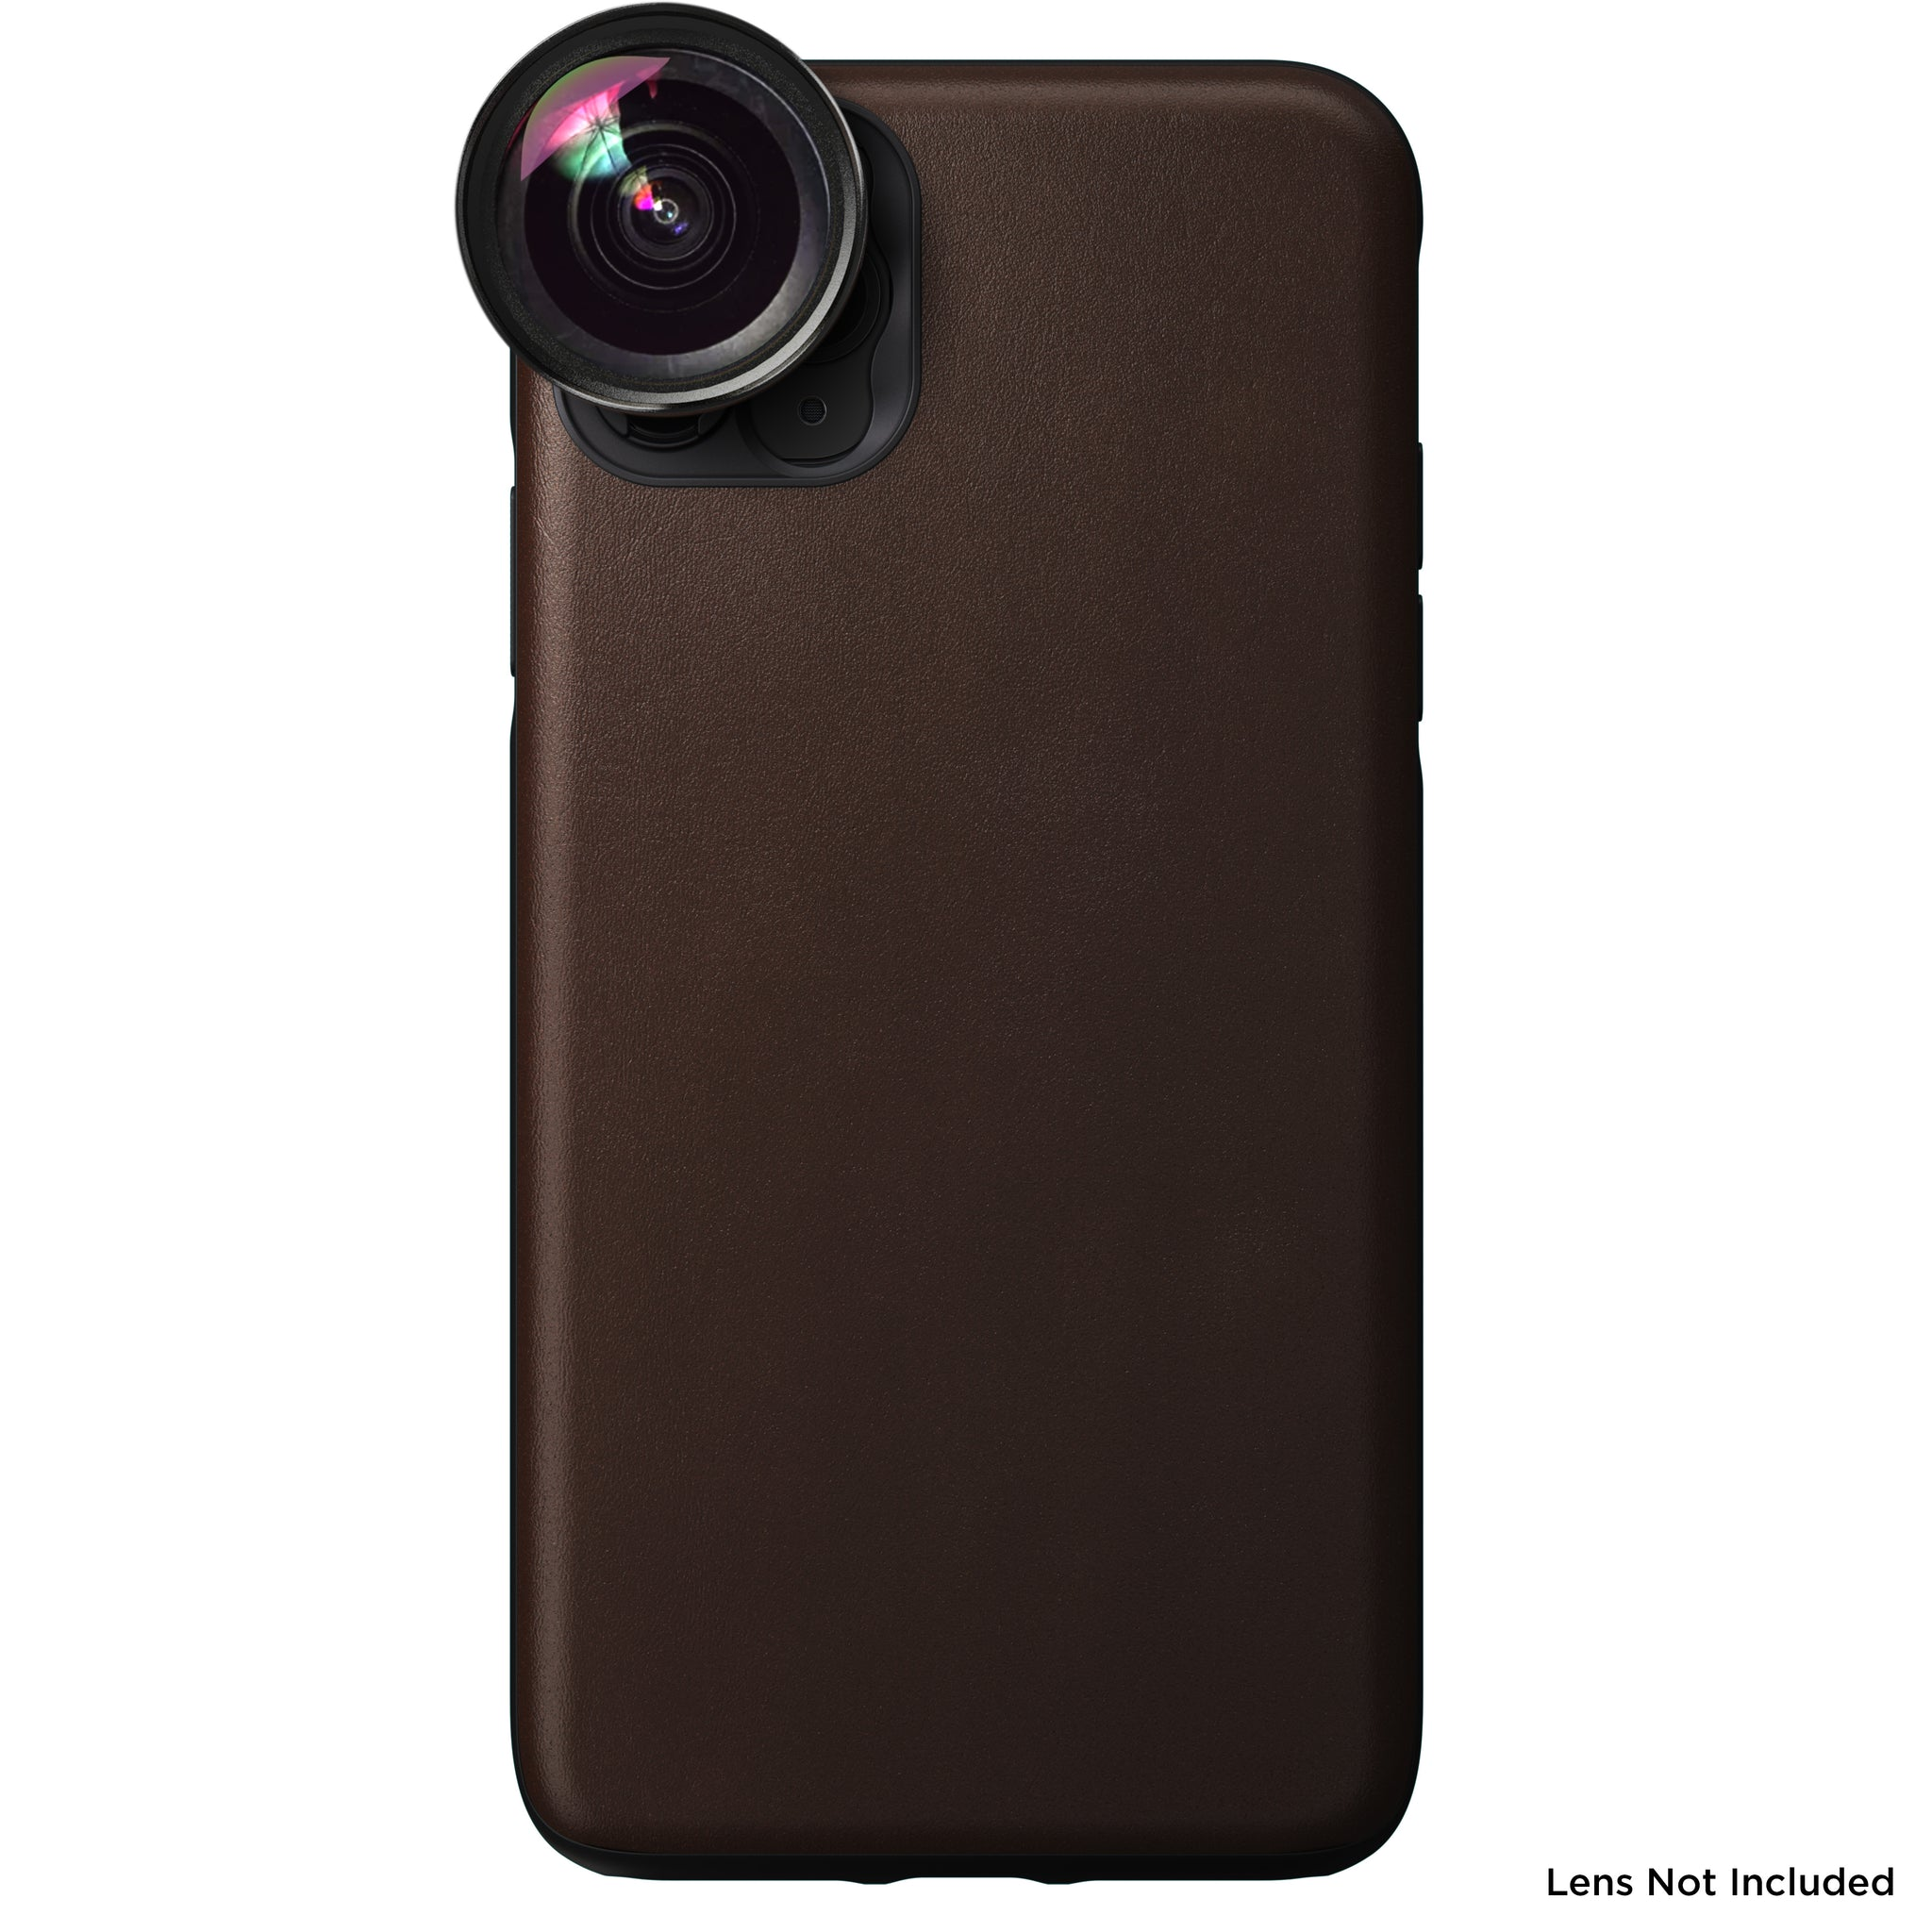 Nomad x Moment Lens Rugged Case for iPhone 11 Pro Max - Rustic Brown